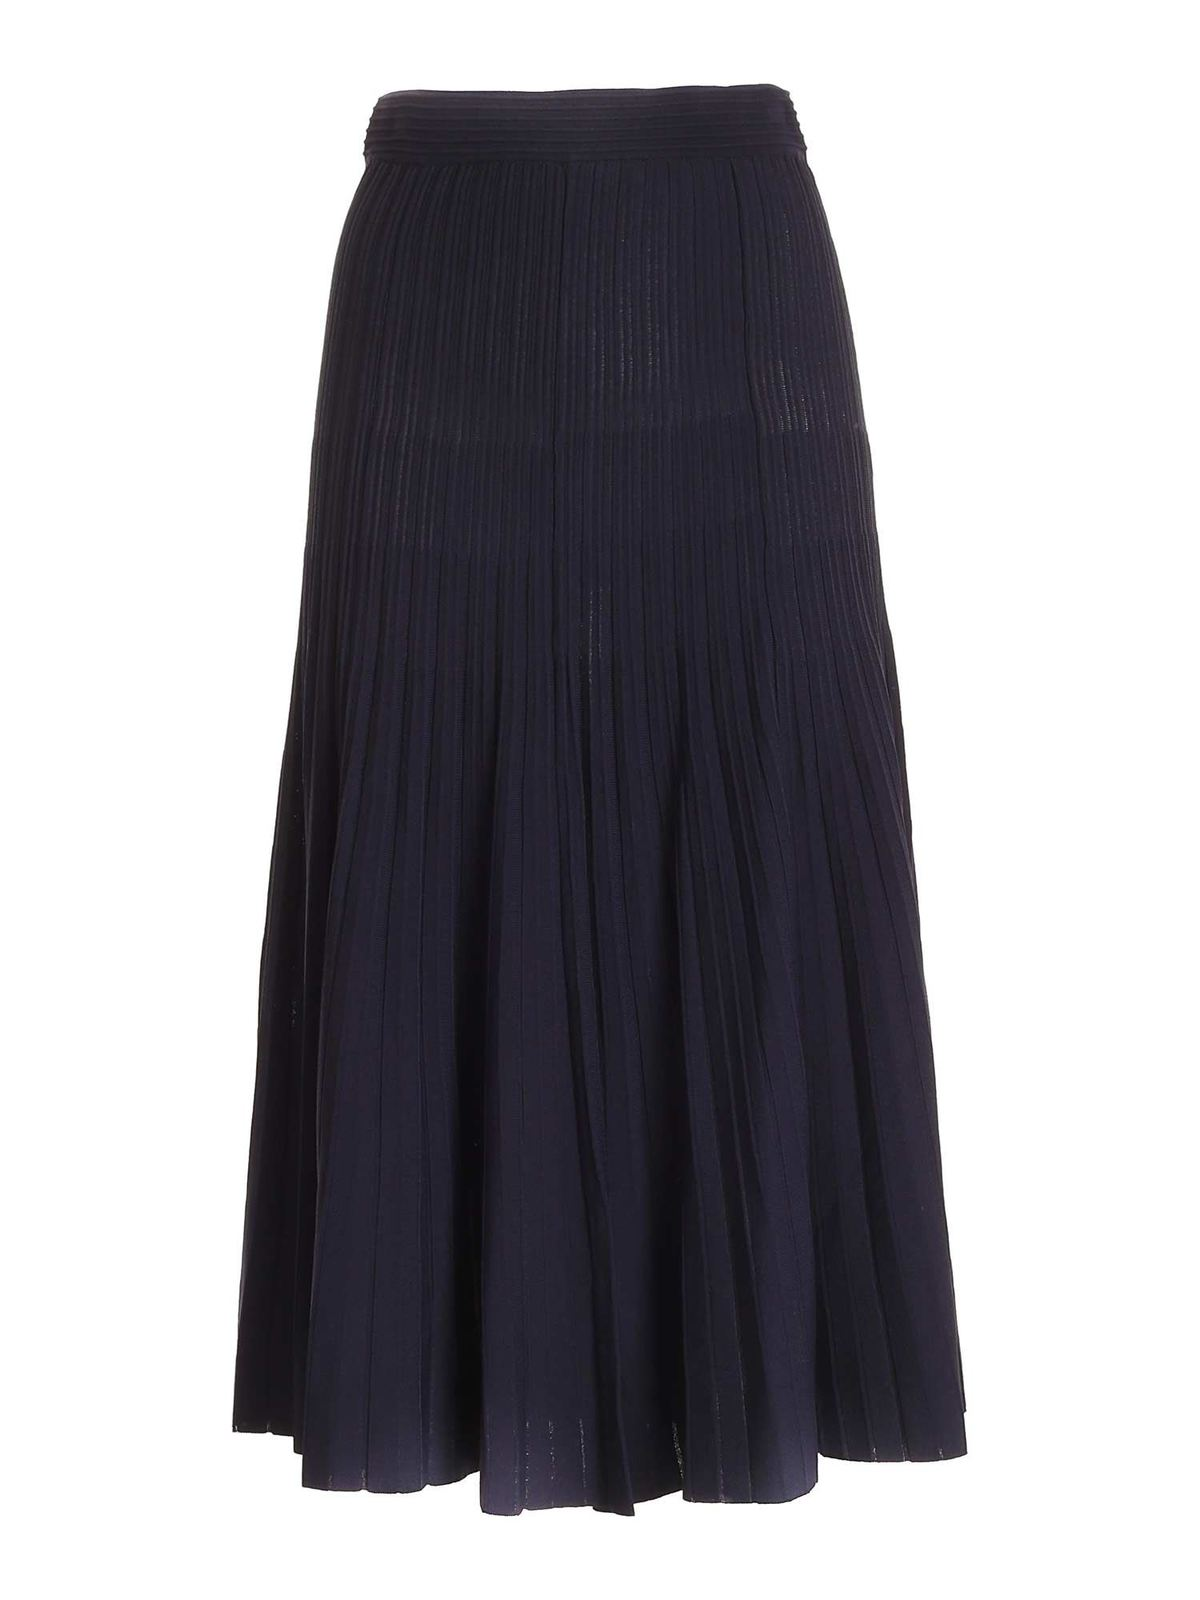 P.a.r.o.s.h. PLEATED SKIRT IN BLUE